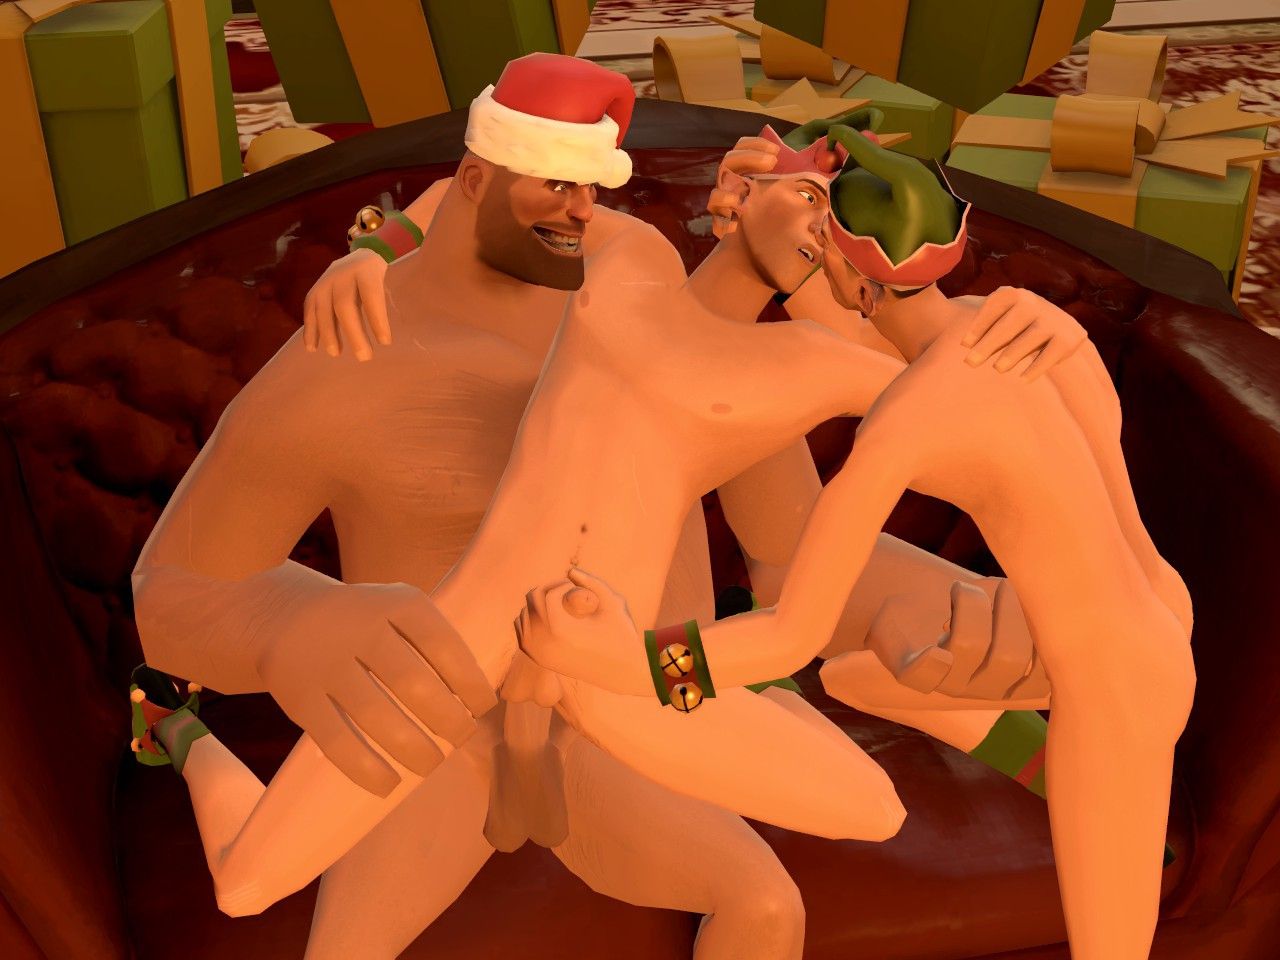 Gmod naked sex nackt movies